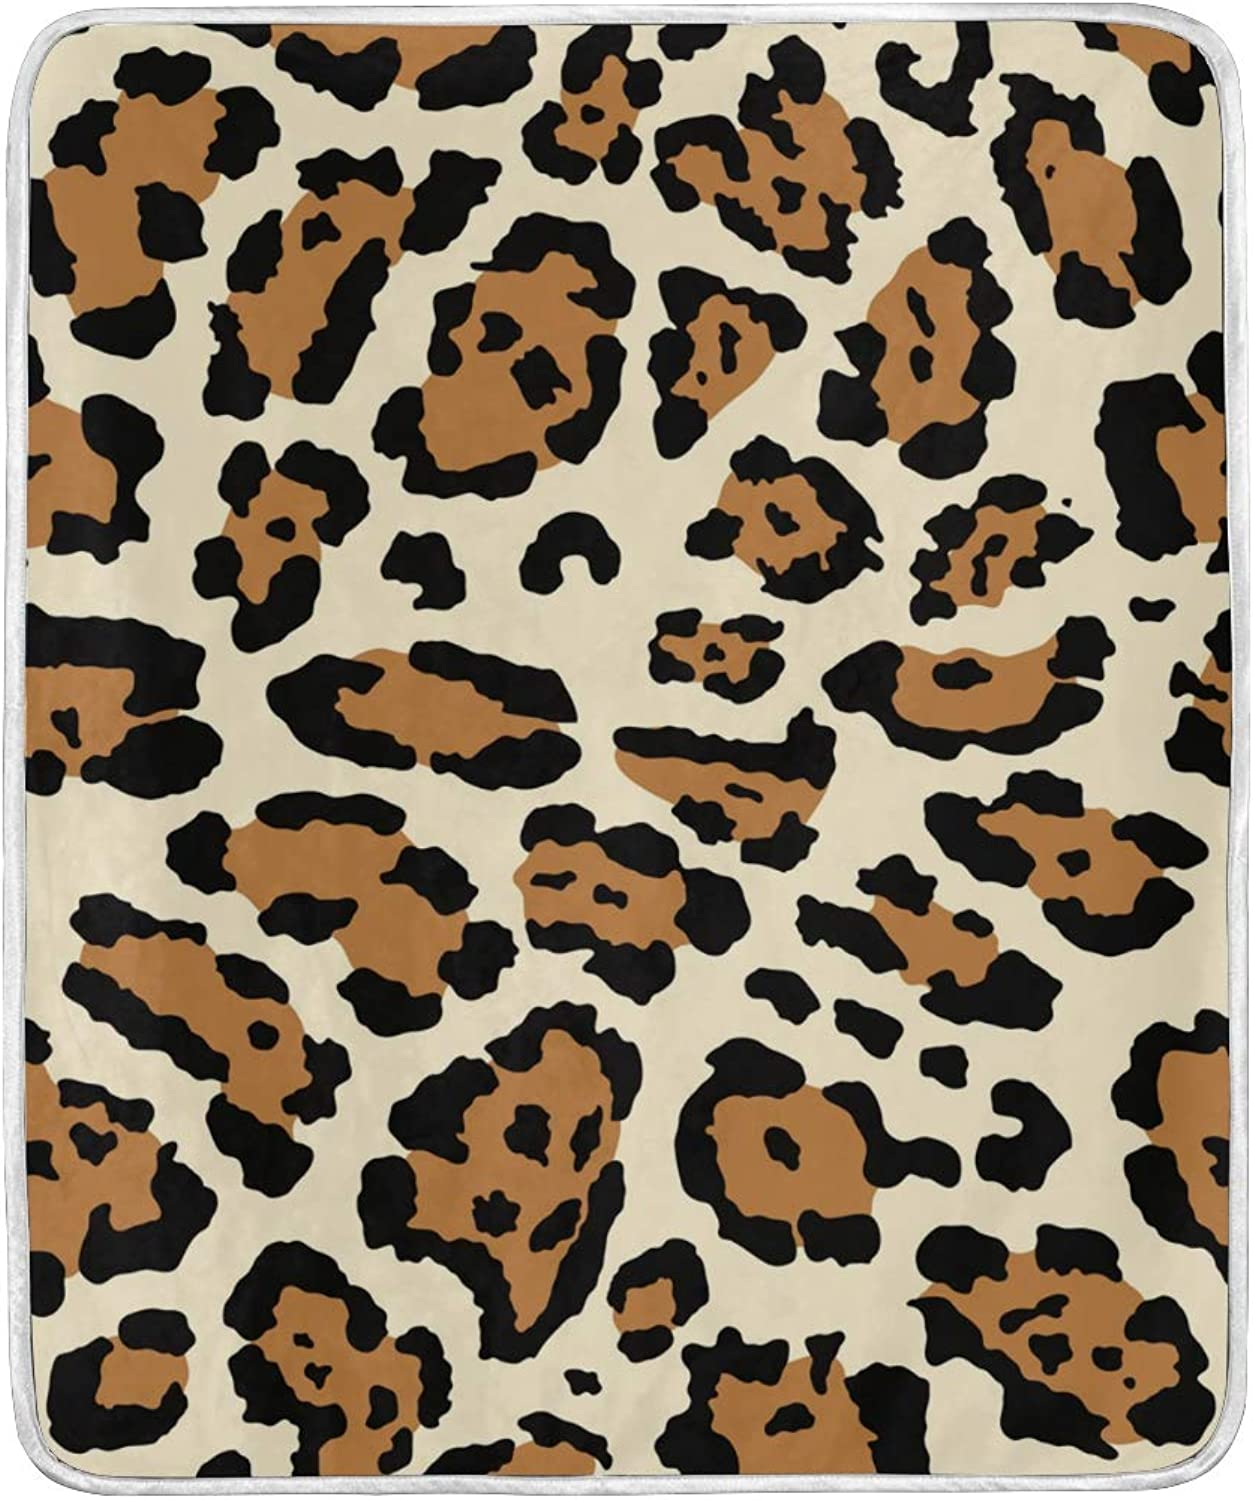 OPRINT Home Decor Leopard Brown Skin Bed Blanket Lightweight Comfy Soft Warm Blanket Throw Size 50 x 60 inches for Kids Boys Women Sofa Couch